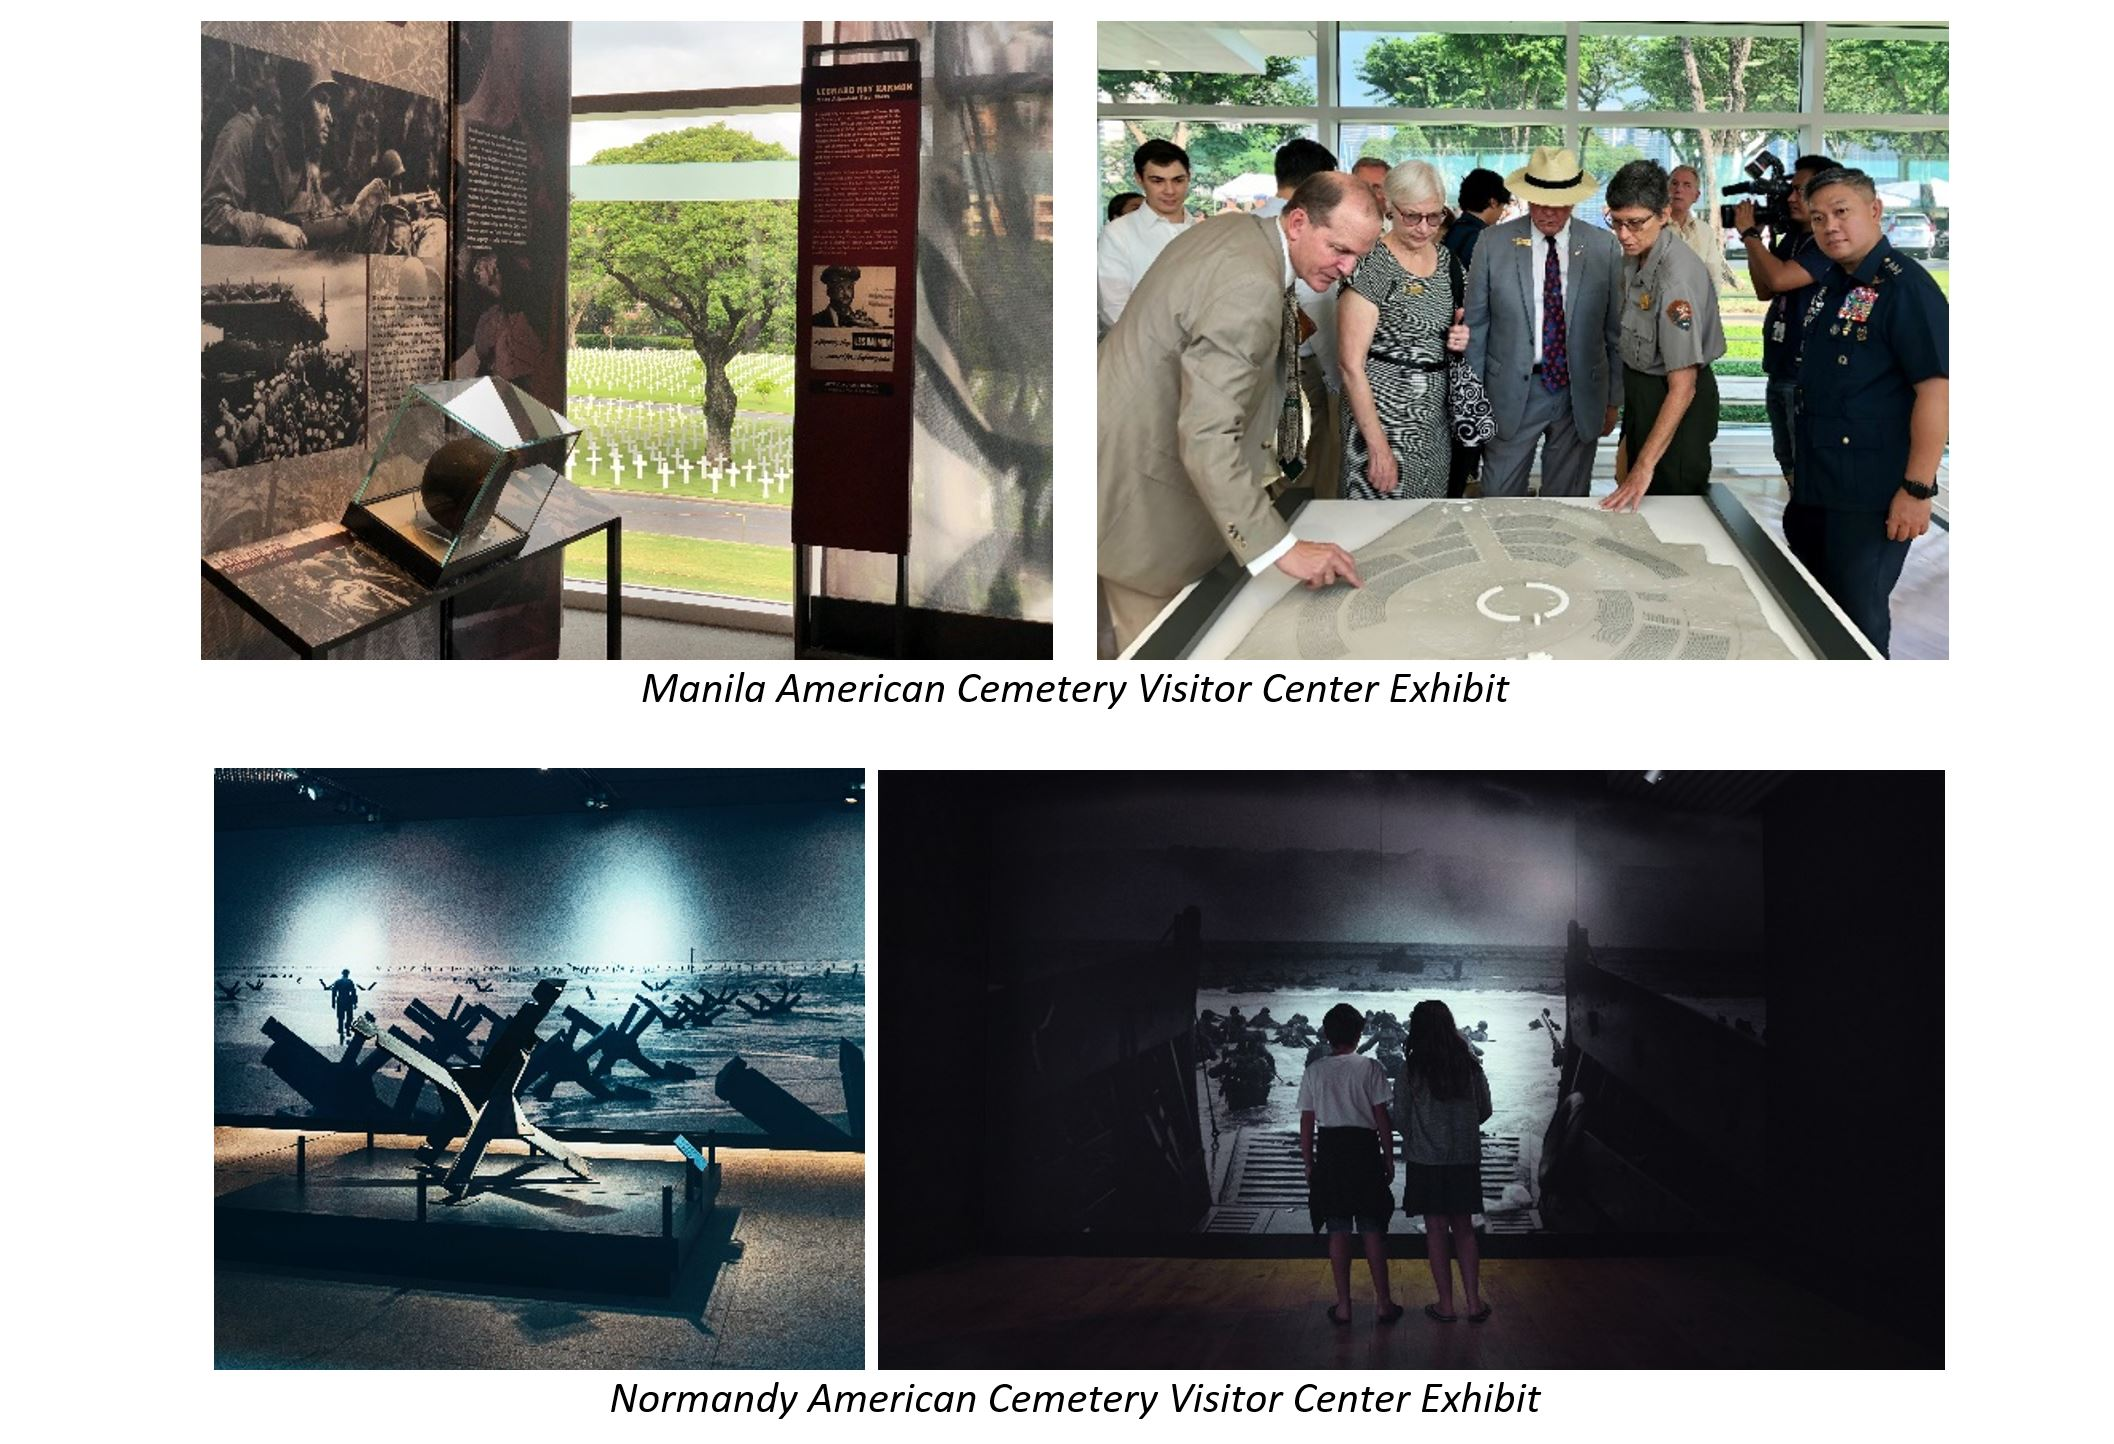 Visitor Center Exhibits at Manila and Normandy American Cemeteries